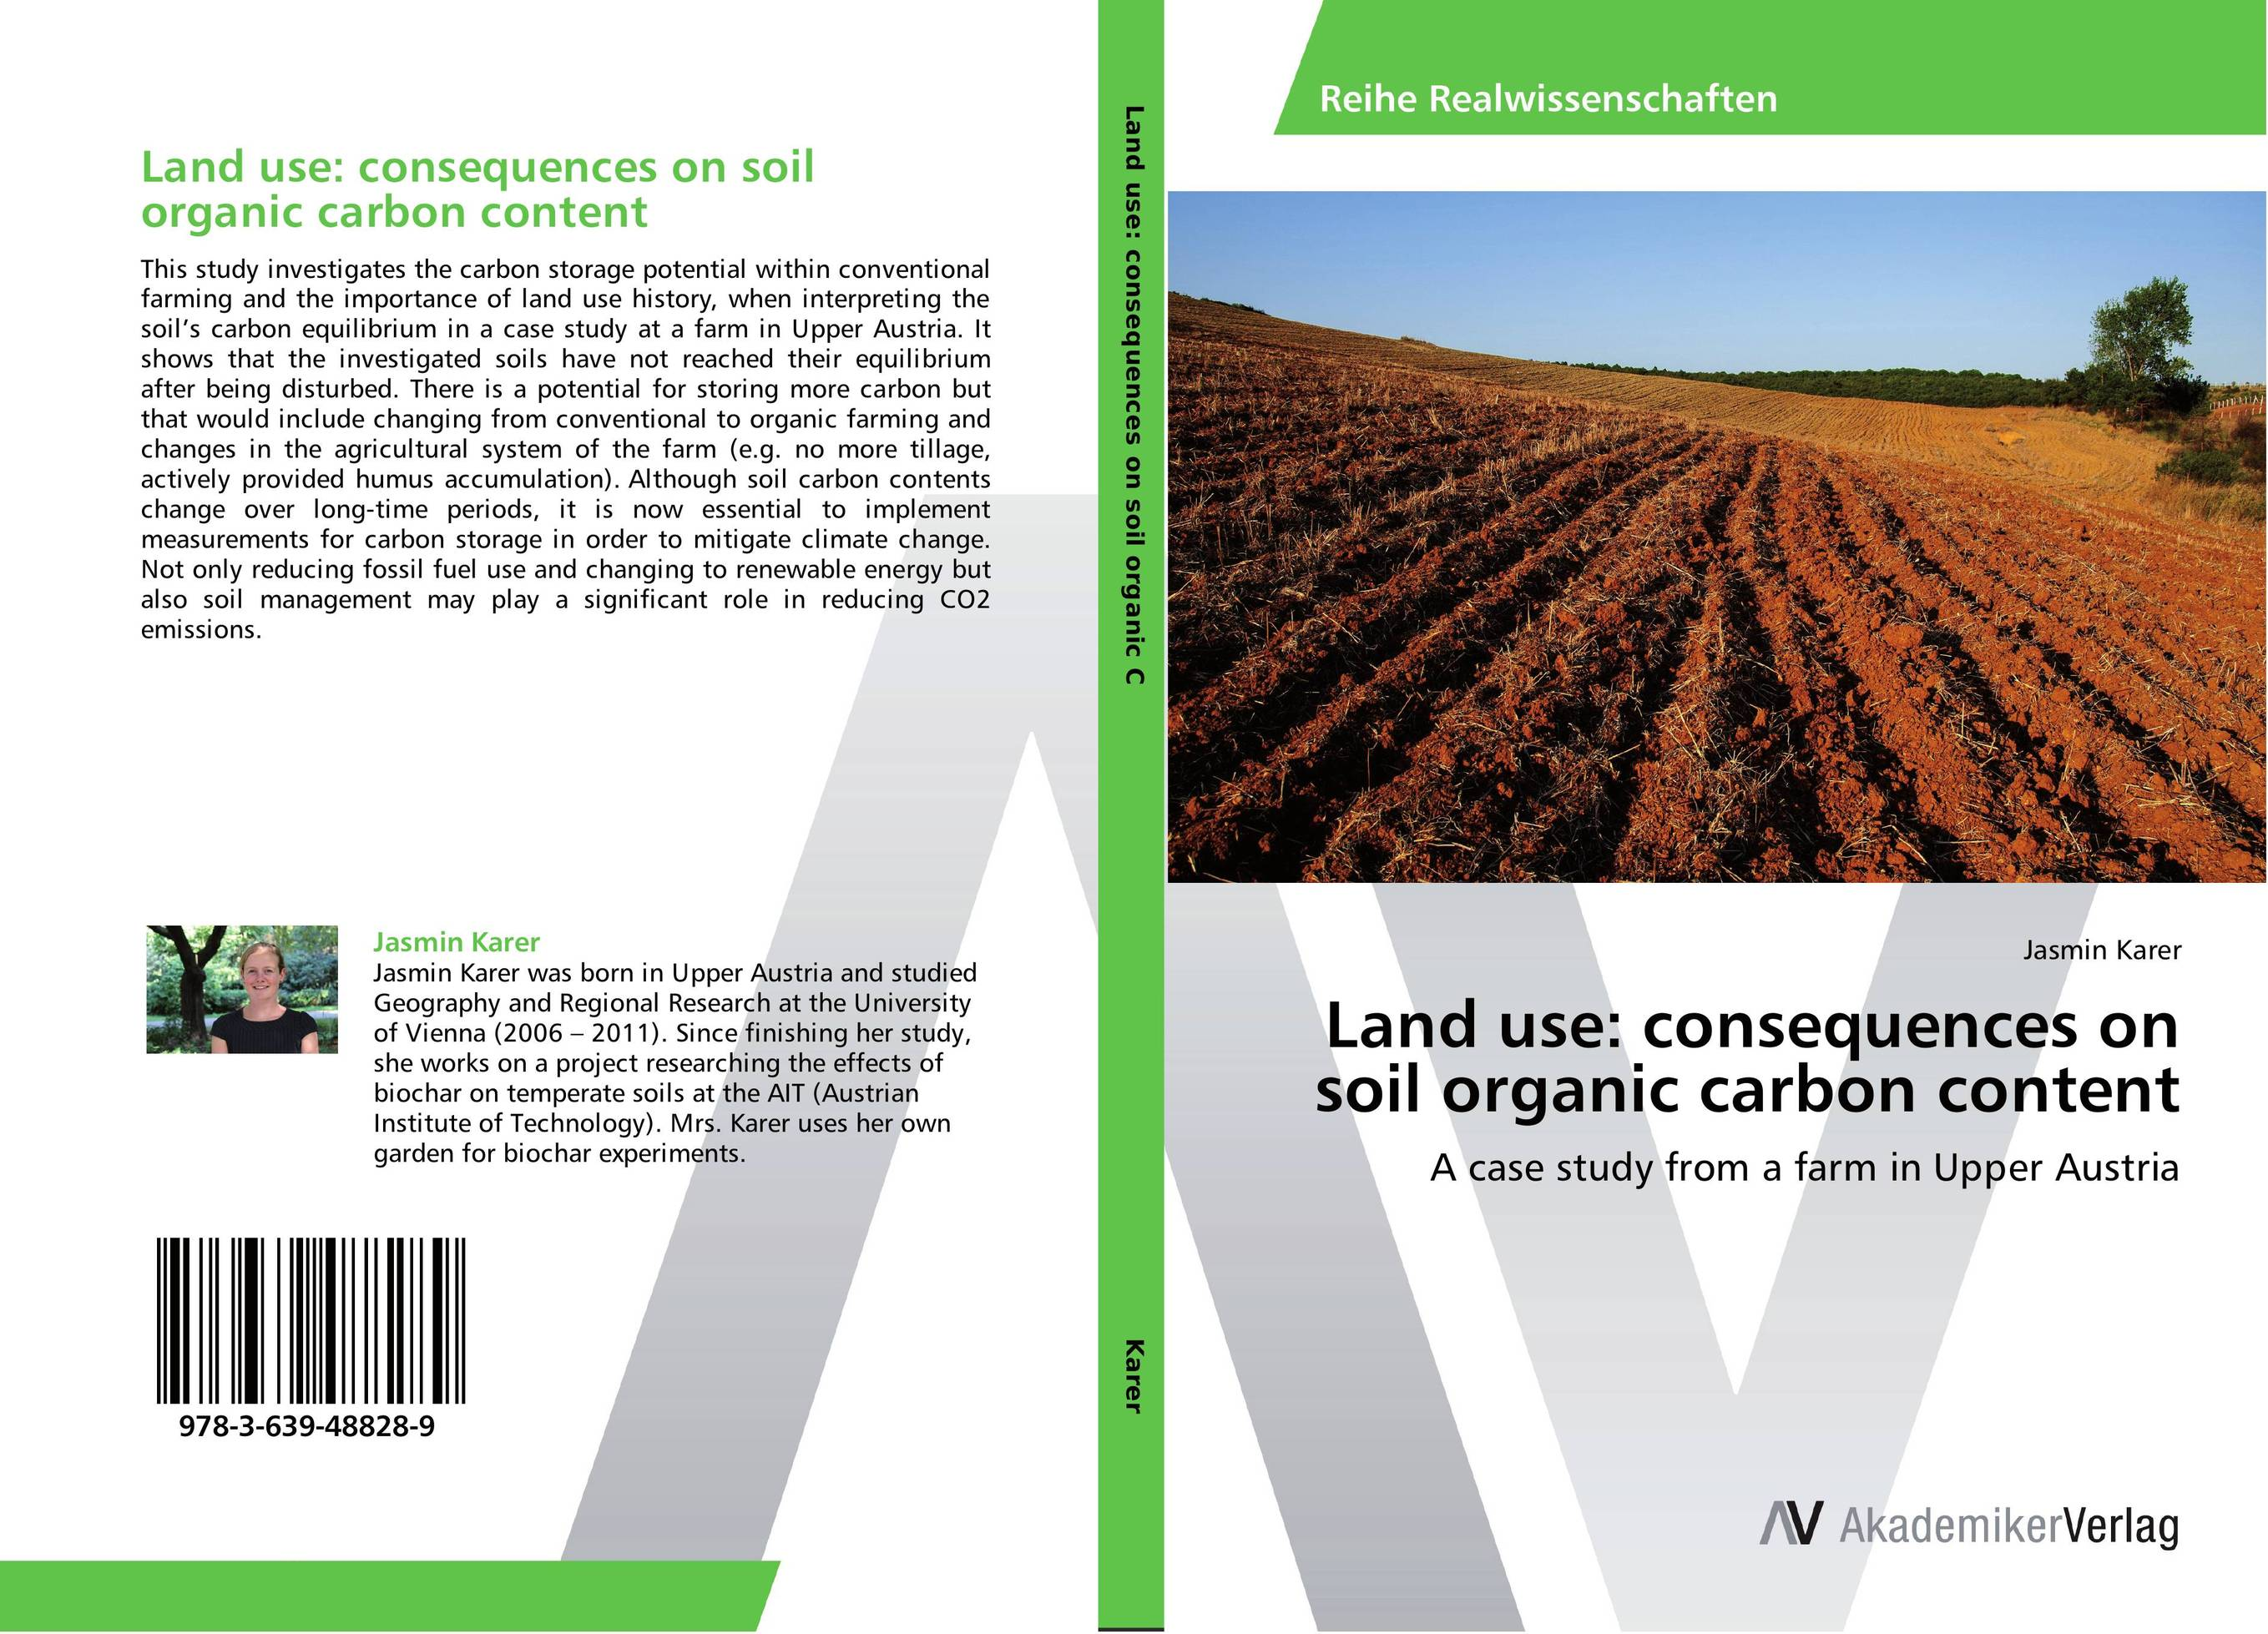 Land use: consequences on soil organic carbon content land use information system